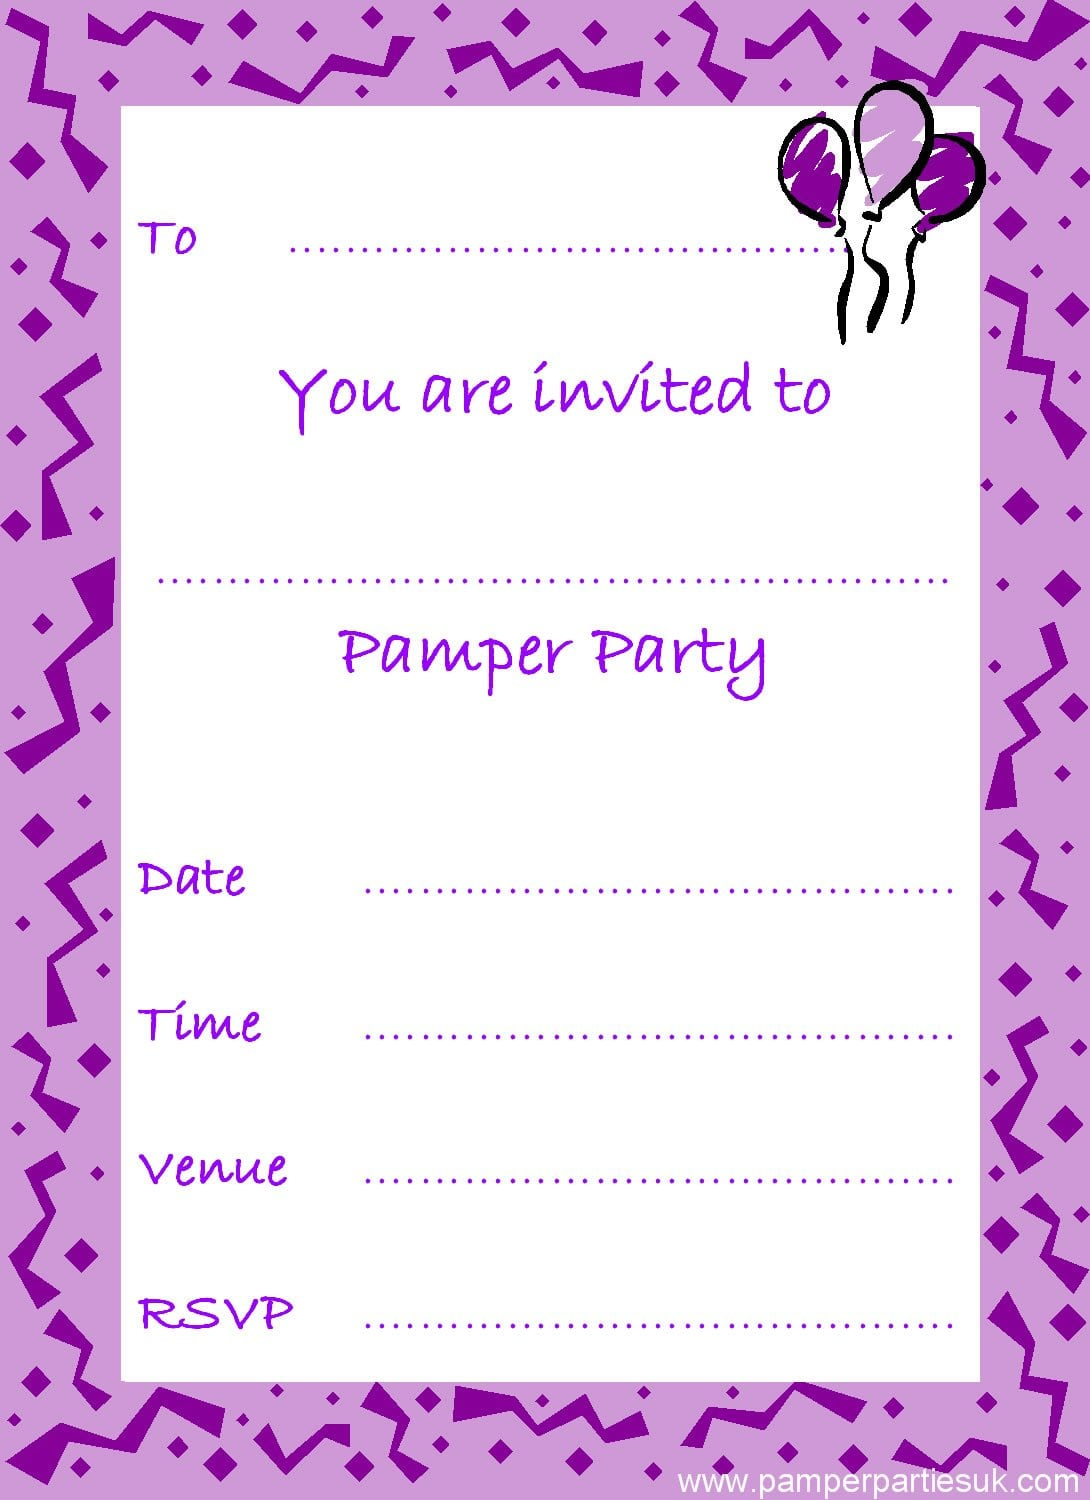 Free Printable Pamper Party Invitations IrhSN29B